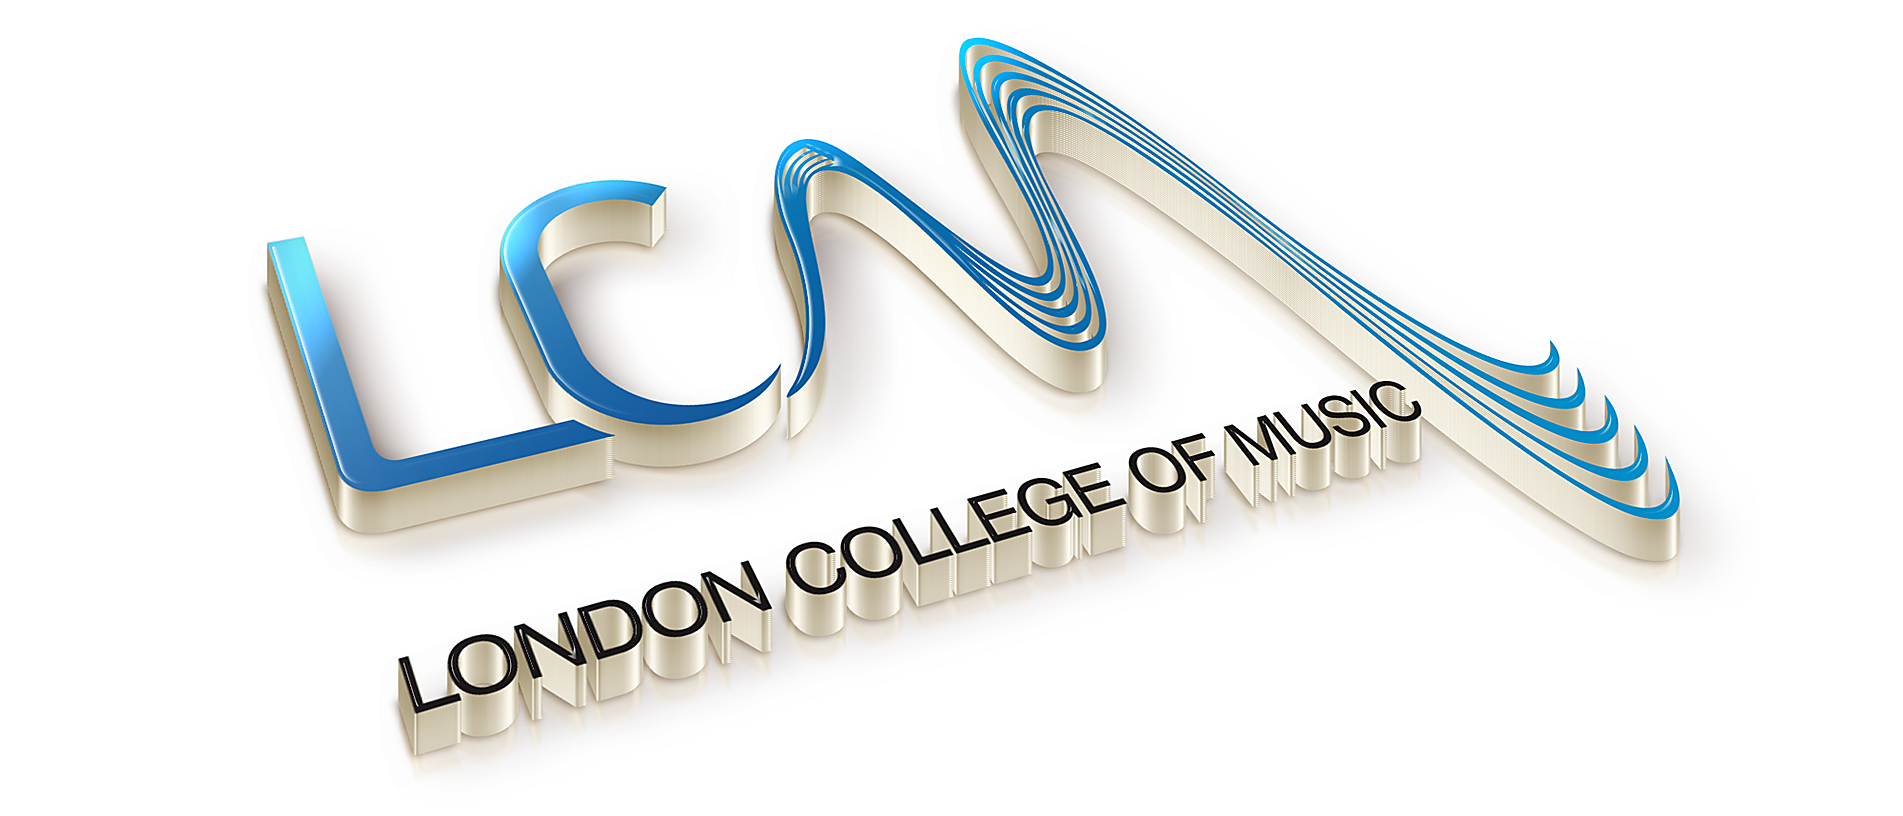 MEB ve London College of Music